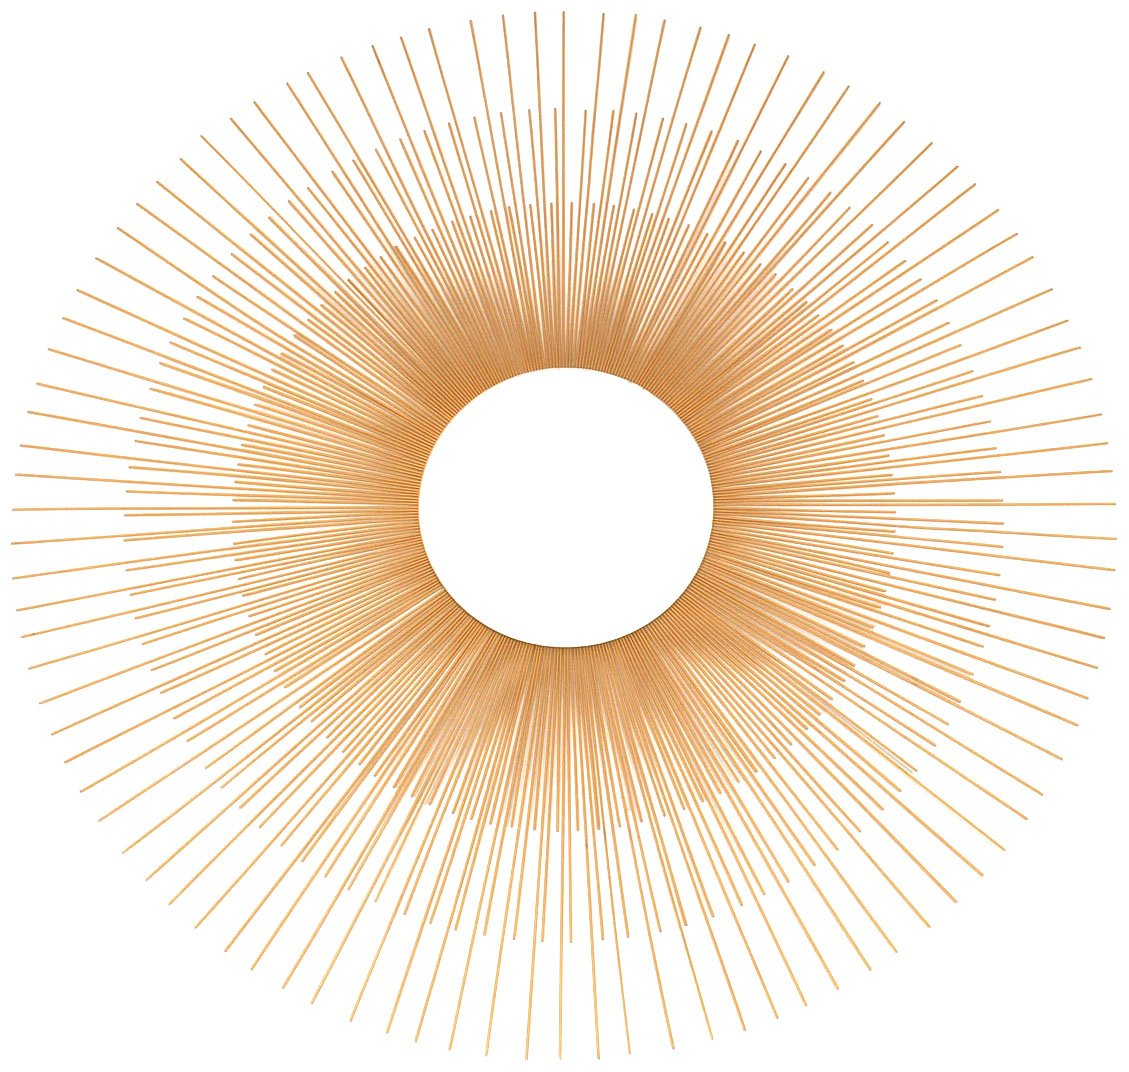 Amazon.com: Ashton Sutton Wall Mirror, Gold Metal Sunburst Rays ...